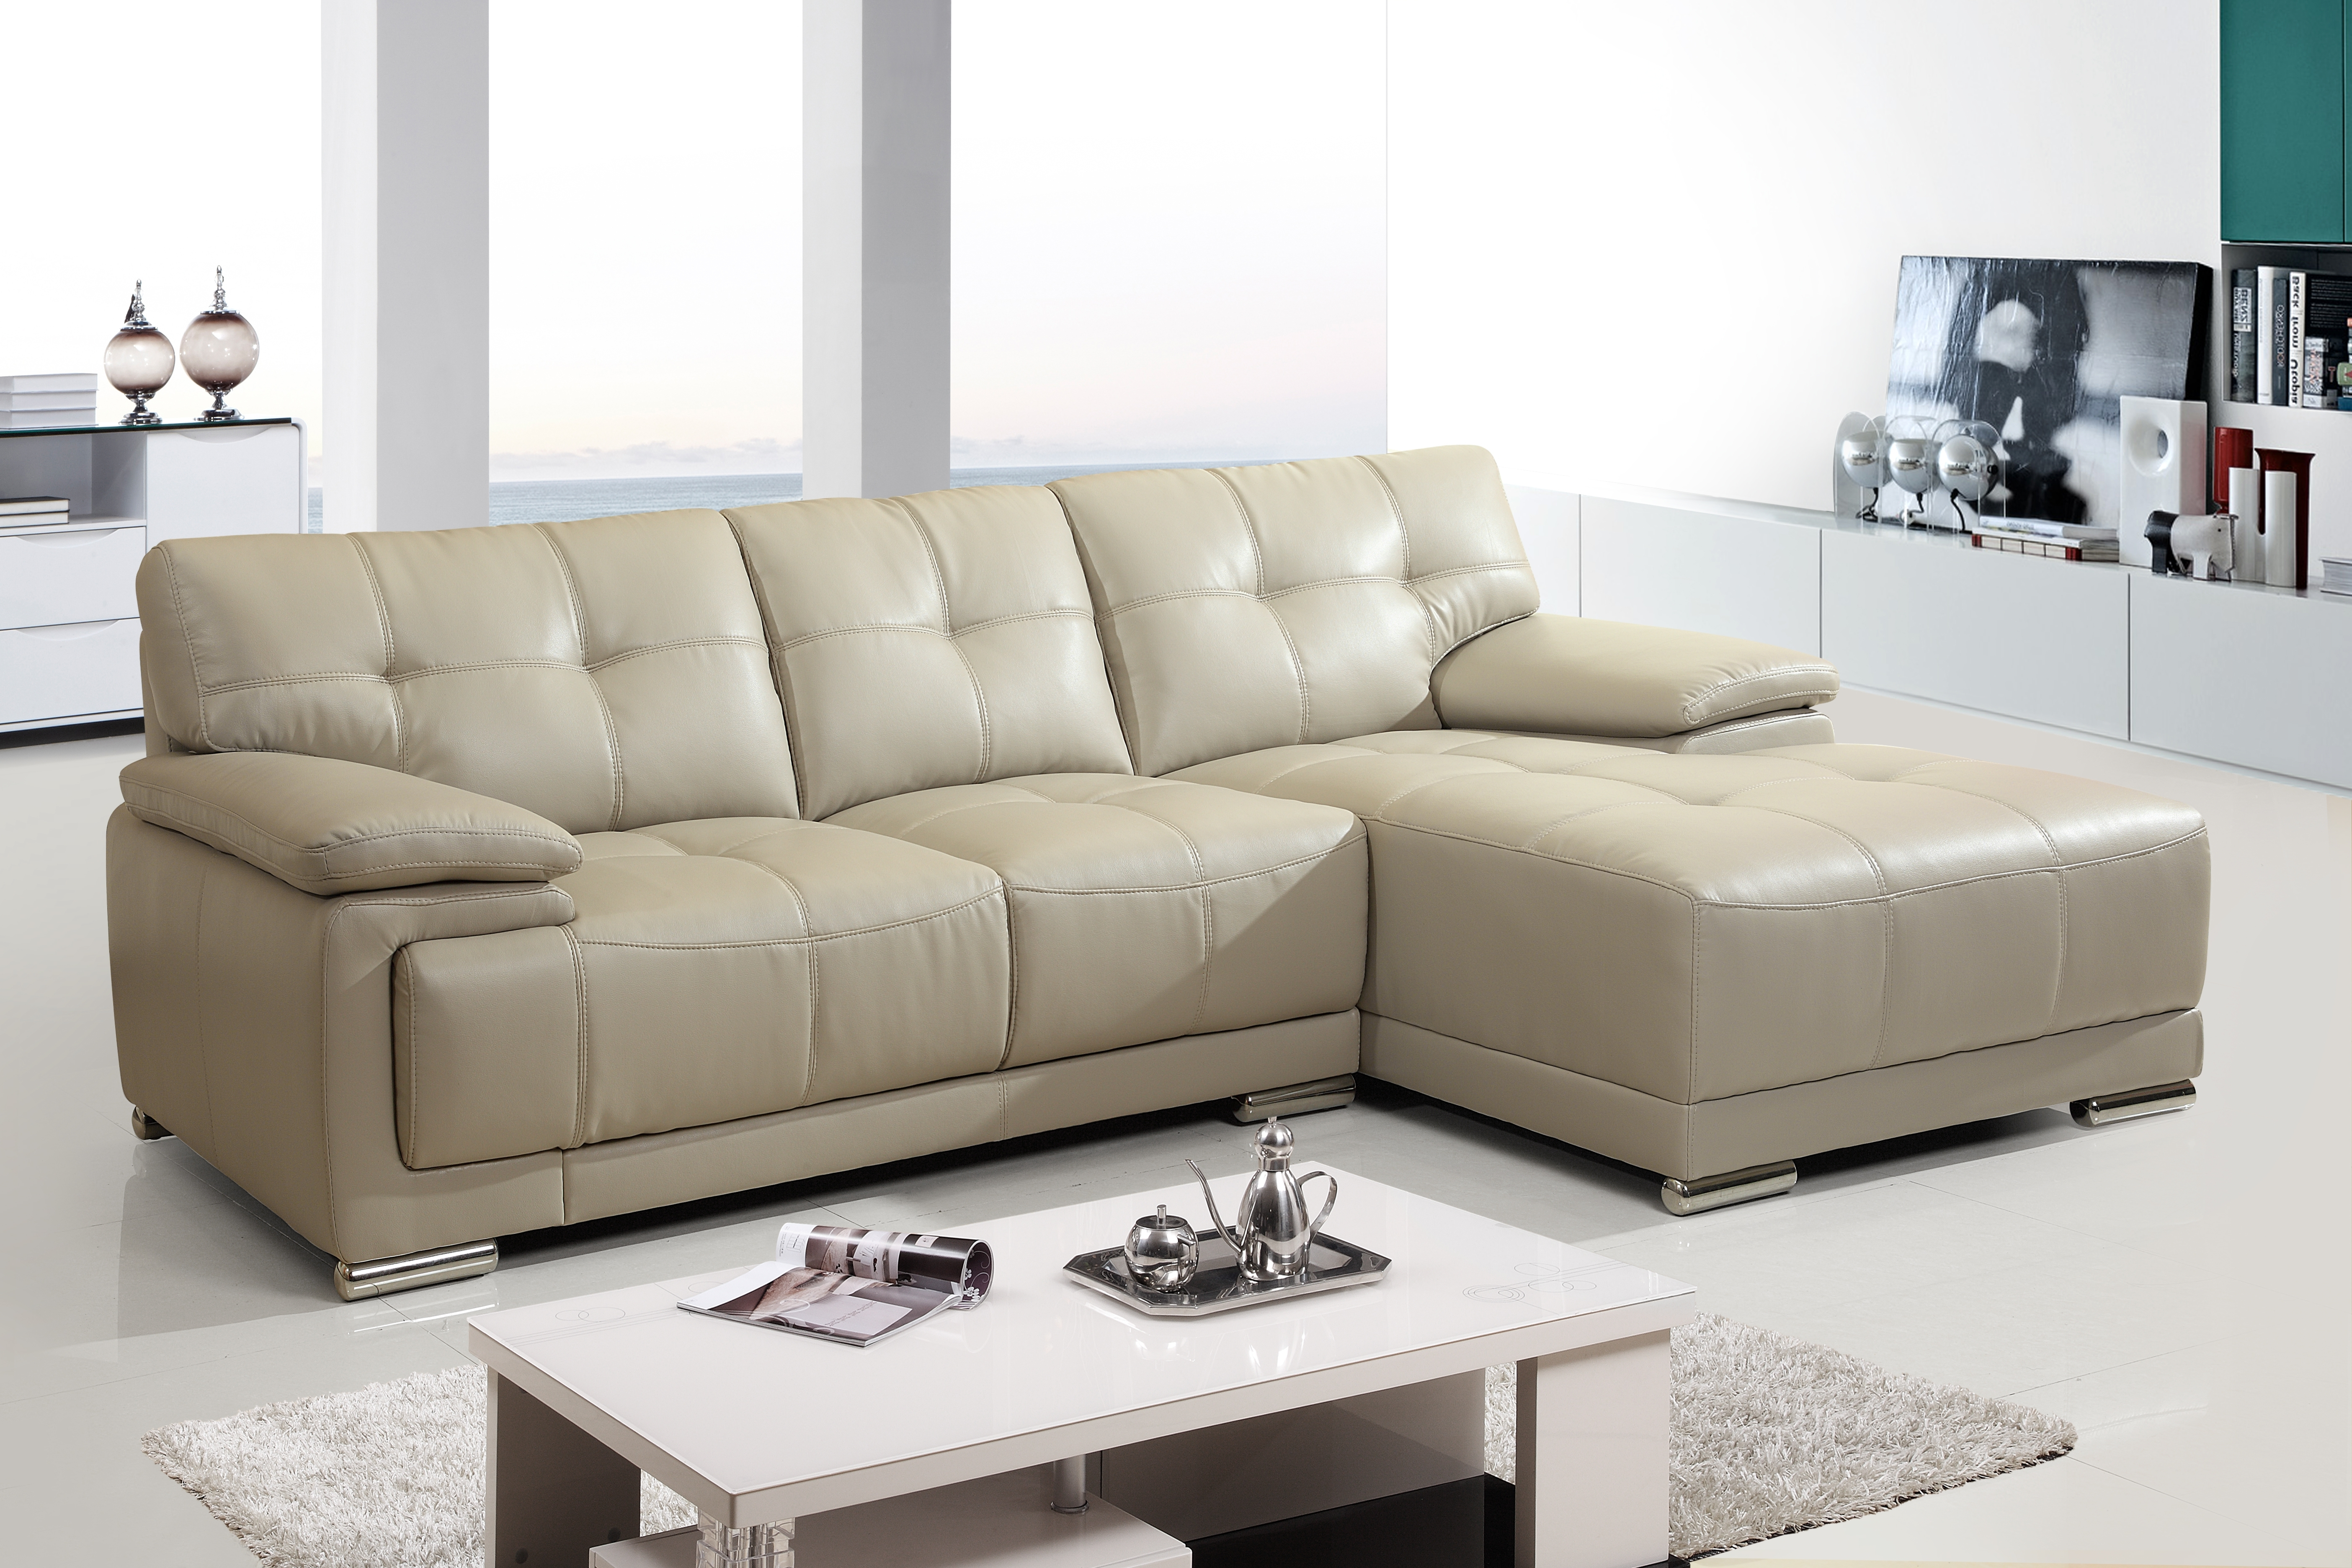 Modern Sectional Sofas Nyc Amazing Sofa Sectionals S8864 Cloud Sale Inside Nyc Sectional Sofas (View 6 of 10)